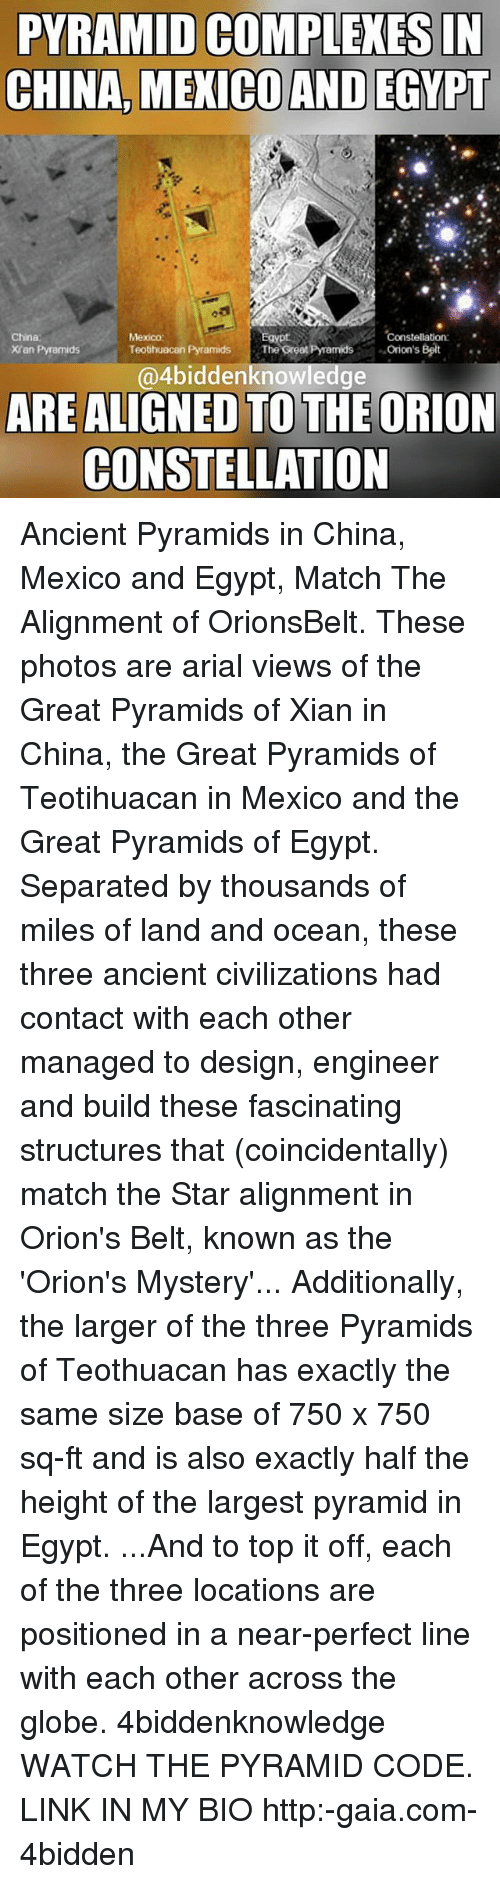 Egyption: PYRAMID COMPLEXES IN  CHINA MEXICOAND EGYPT  China  Mexico  Constellation  Orion's Belt  Teotihuacan Pyramids  The Great Pramids  Xian Pyramids  4biddenknowledge  ARE ALIGNED TO THE ORION  CONSTELLATION Ancient Pyramids in China, Mexico and Egypt, Match The Alignment of OrionsBelt. These photos are arial views of the Great Pyramids of Xian in China, the Great Pyramids of Teotihuacan in Mexico and the Great Pyramids of Egypt. Separated by thousands of miles of land and ocean, these three ancient civilizations had contact with each other managed to design, engineer and build these fascinating structures that (coincidentally) match the Star alignment in Orion's Belt, known as the 'Orion's Mystery'... Additionally, the larger of the three Pyramids of Teothuacan has exactly the same size base of 750 x 750 sq-ft and is also exactly half the height of the largest pyramid in Egypt. ...And to top it off, each of the three locations are positioned in a near-perfect line with each other across the globe. 4biddenknowledge WATCH THE PYRAMID CODE. LINK IN MY BIO http:-gaia.com-4bidden